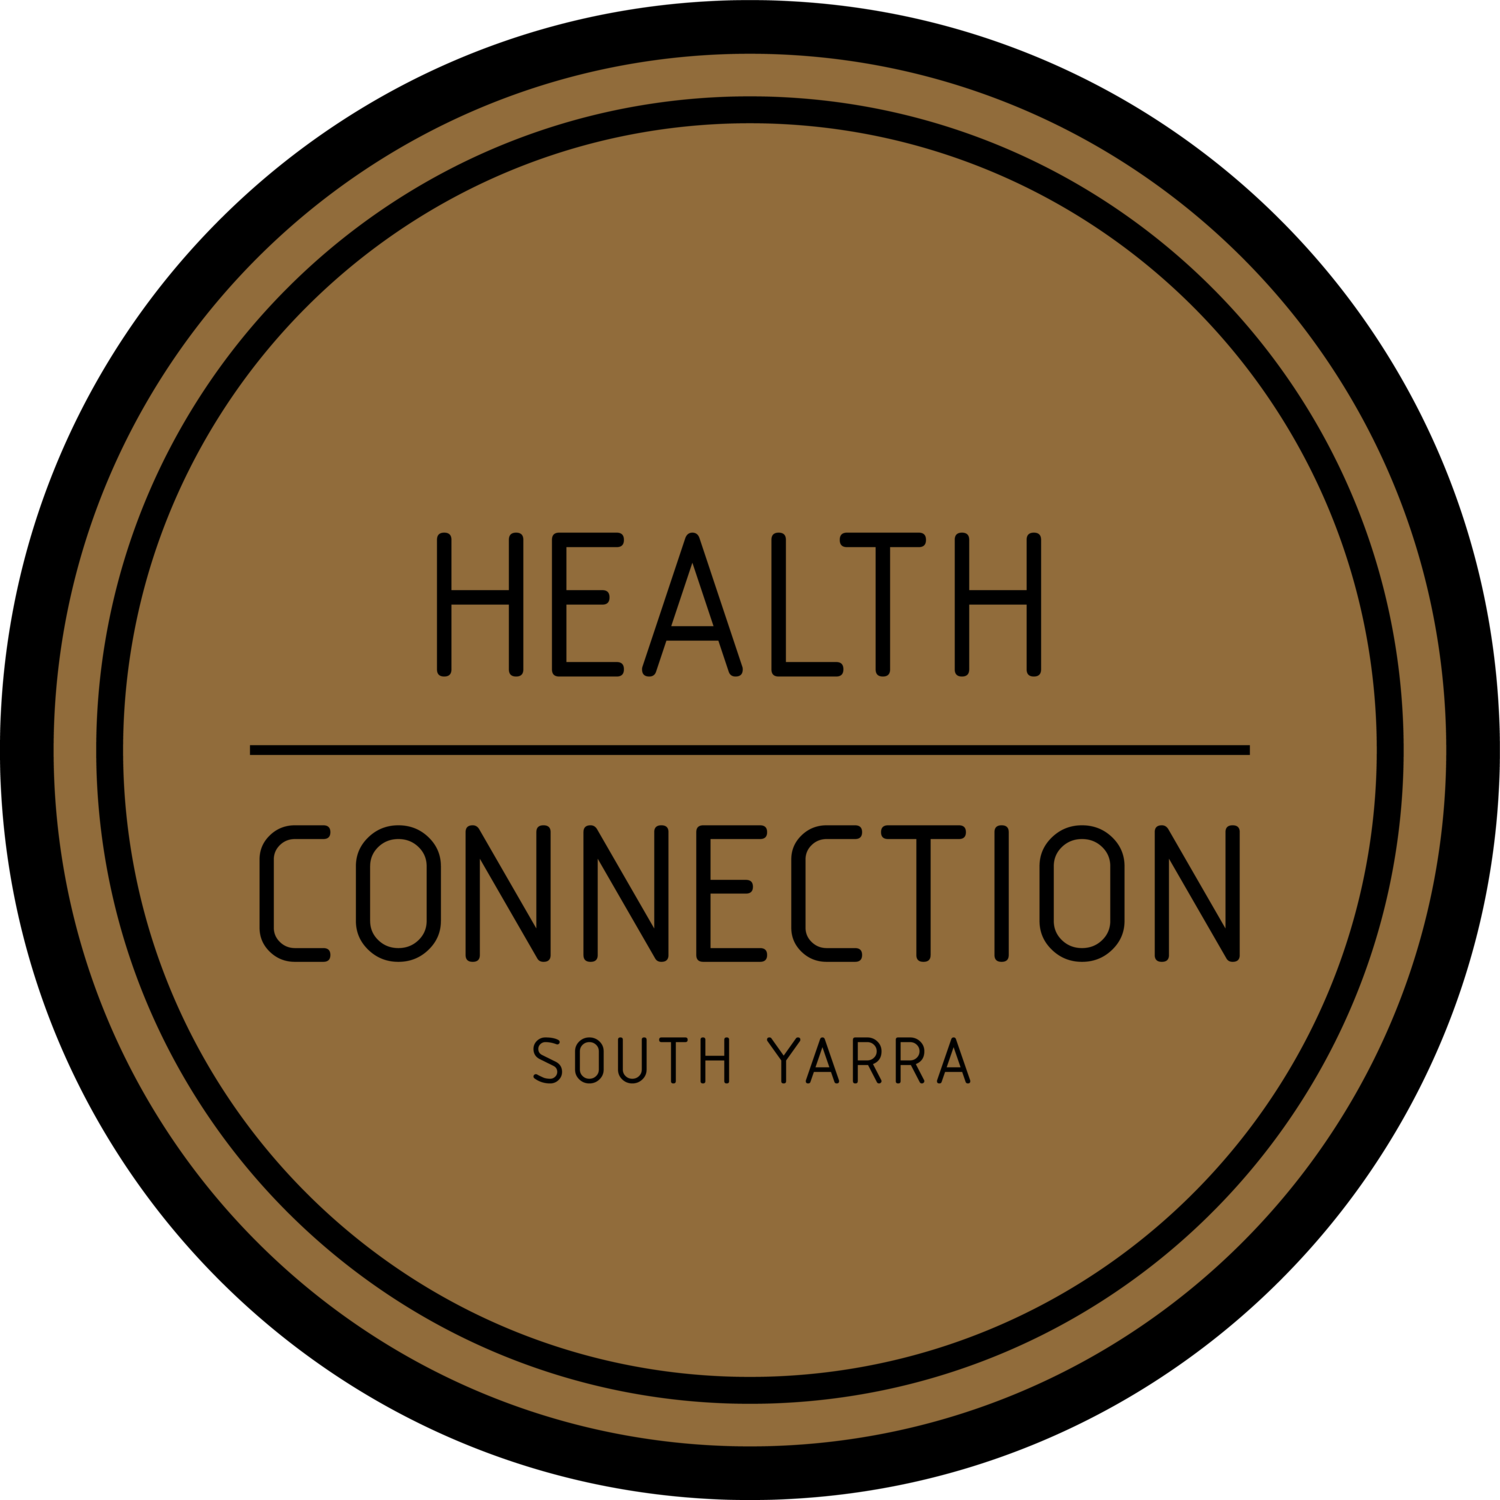 Health Connection South Yarra